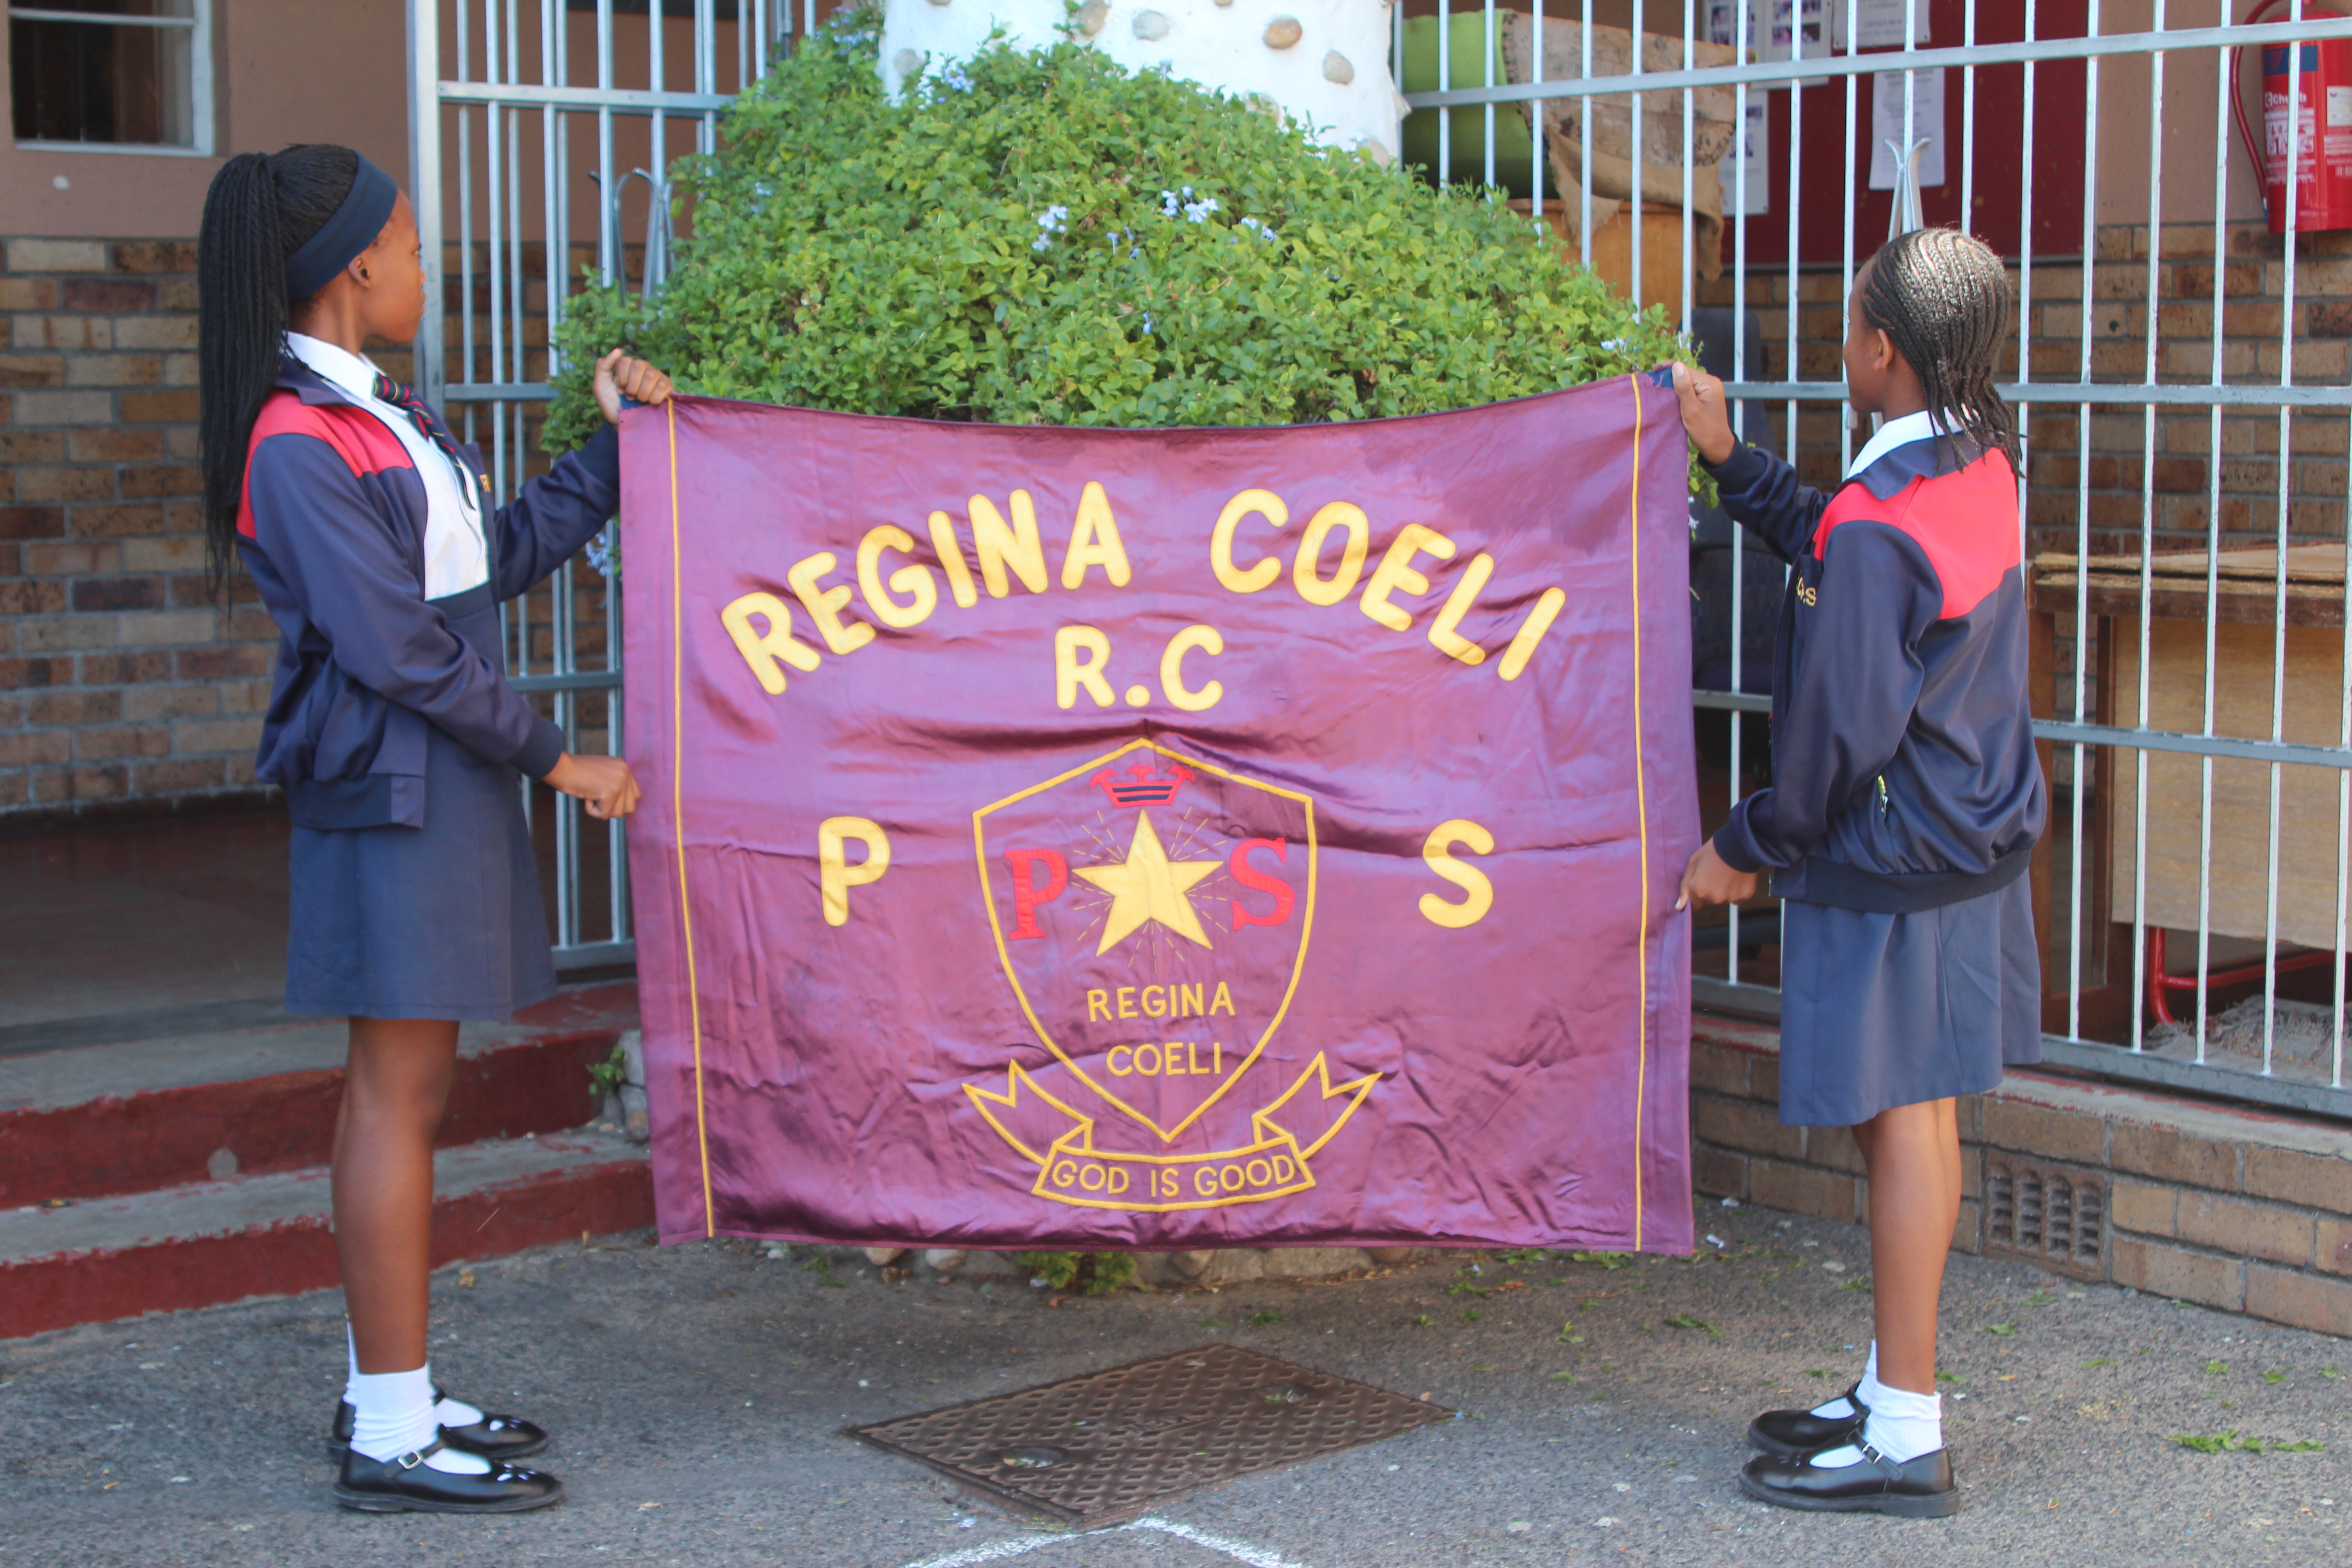 Regina Coeli RC Primary School